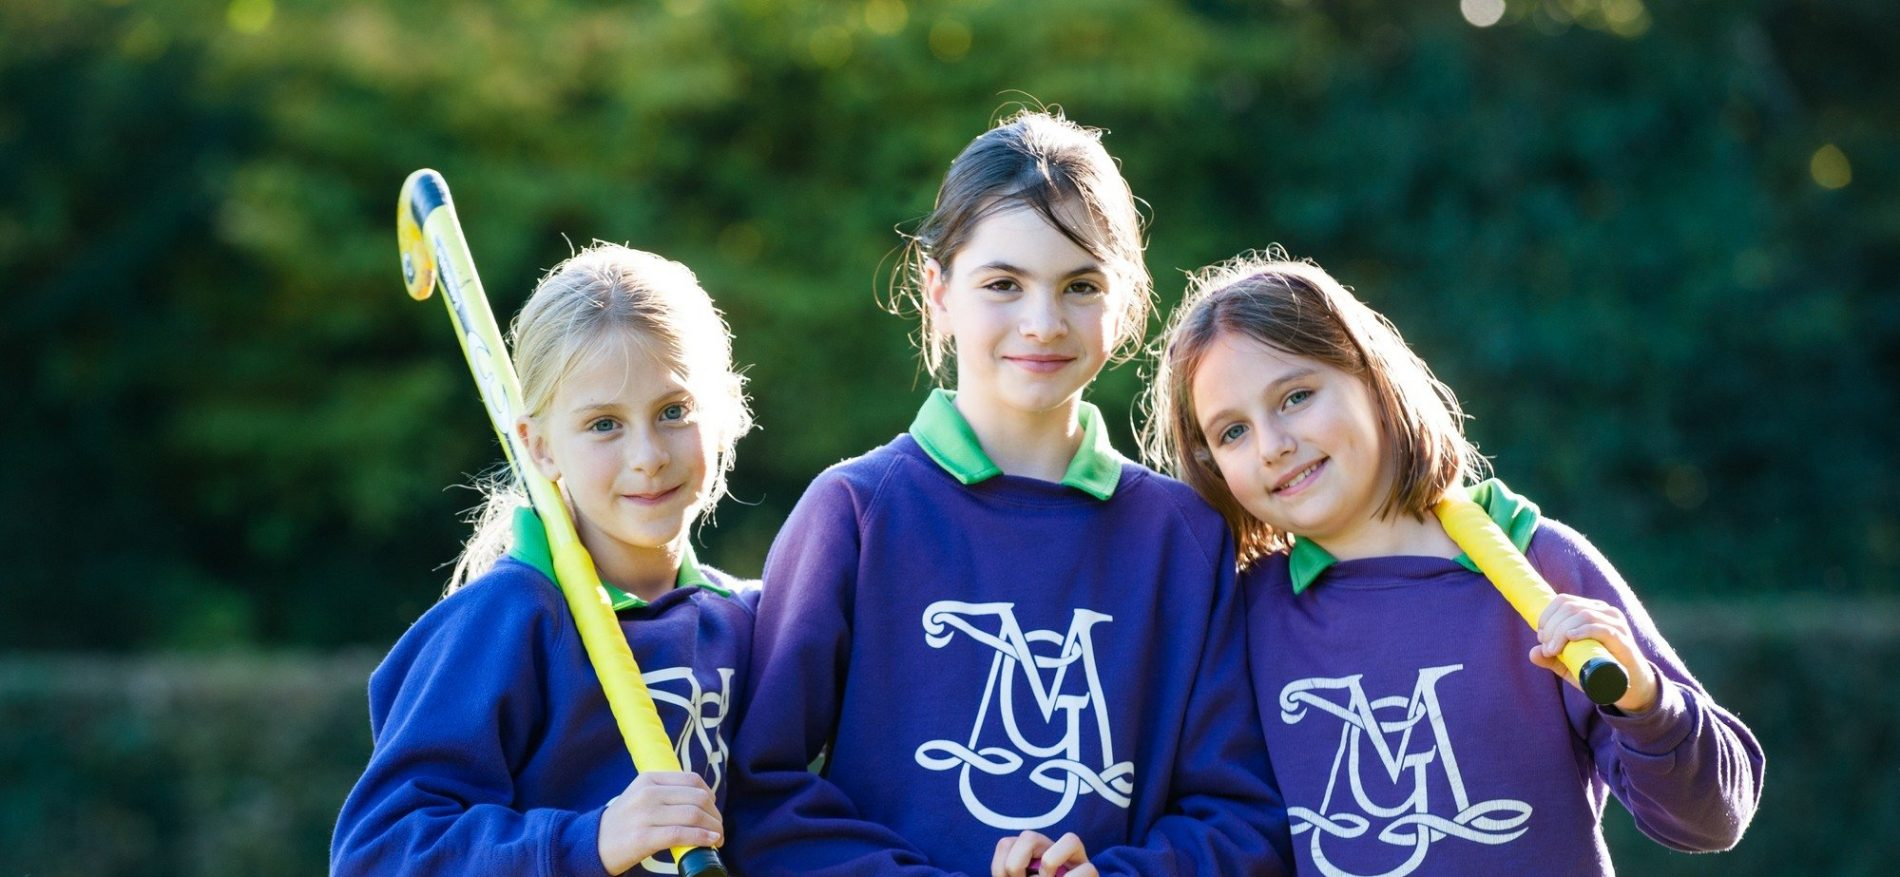 three school girls with hockey sticks